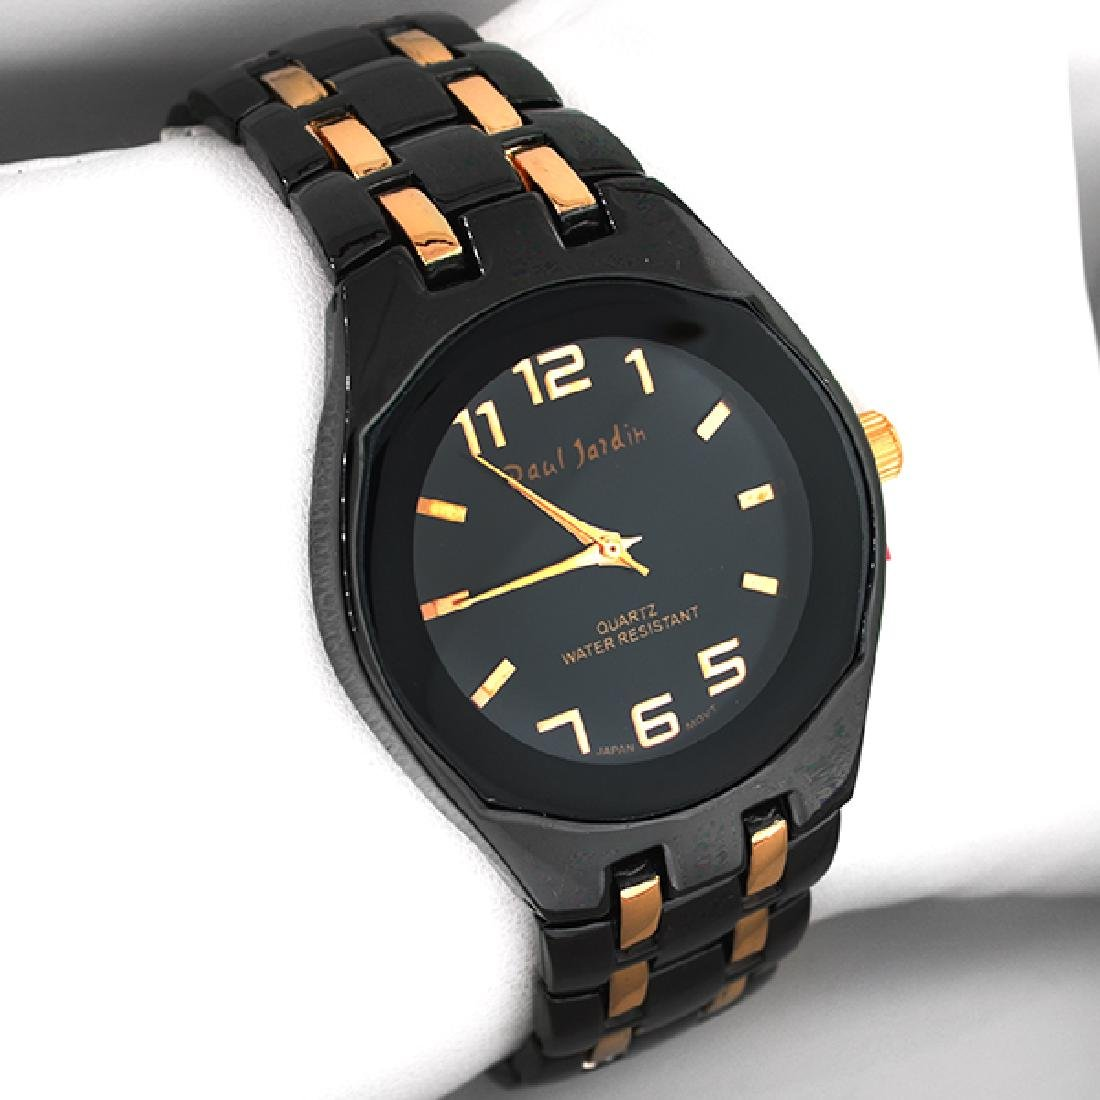 Paul Jardin  Men's Black and Copper Watch